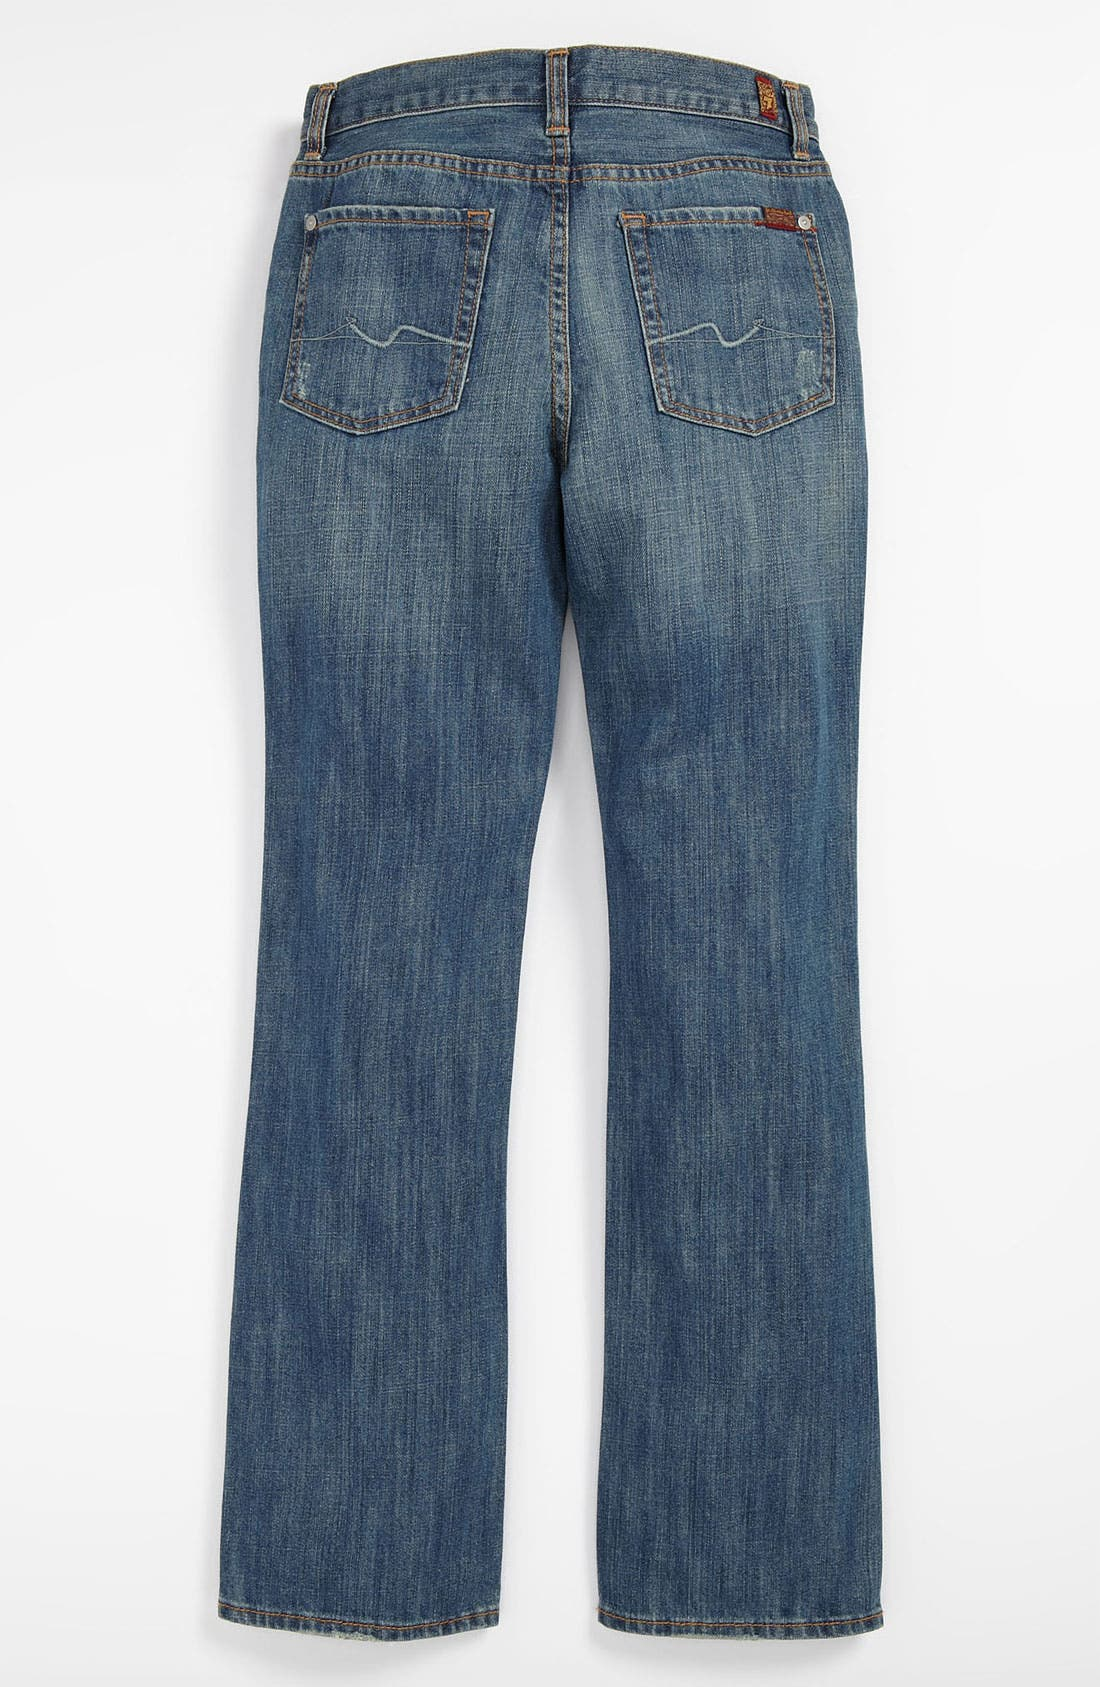 Main Image - 7 For All Mankind® 'Nate' Slim Bootcut Jeans (Big Boys)